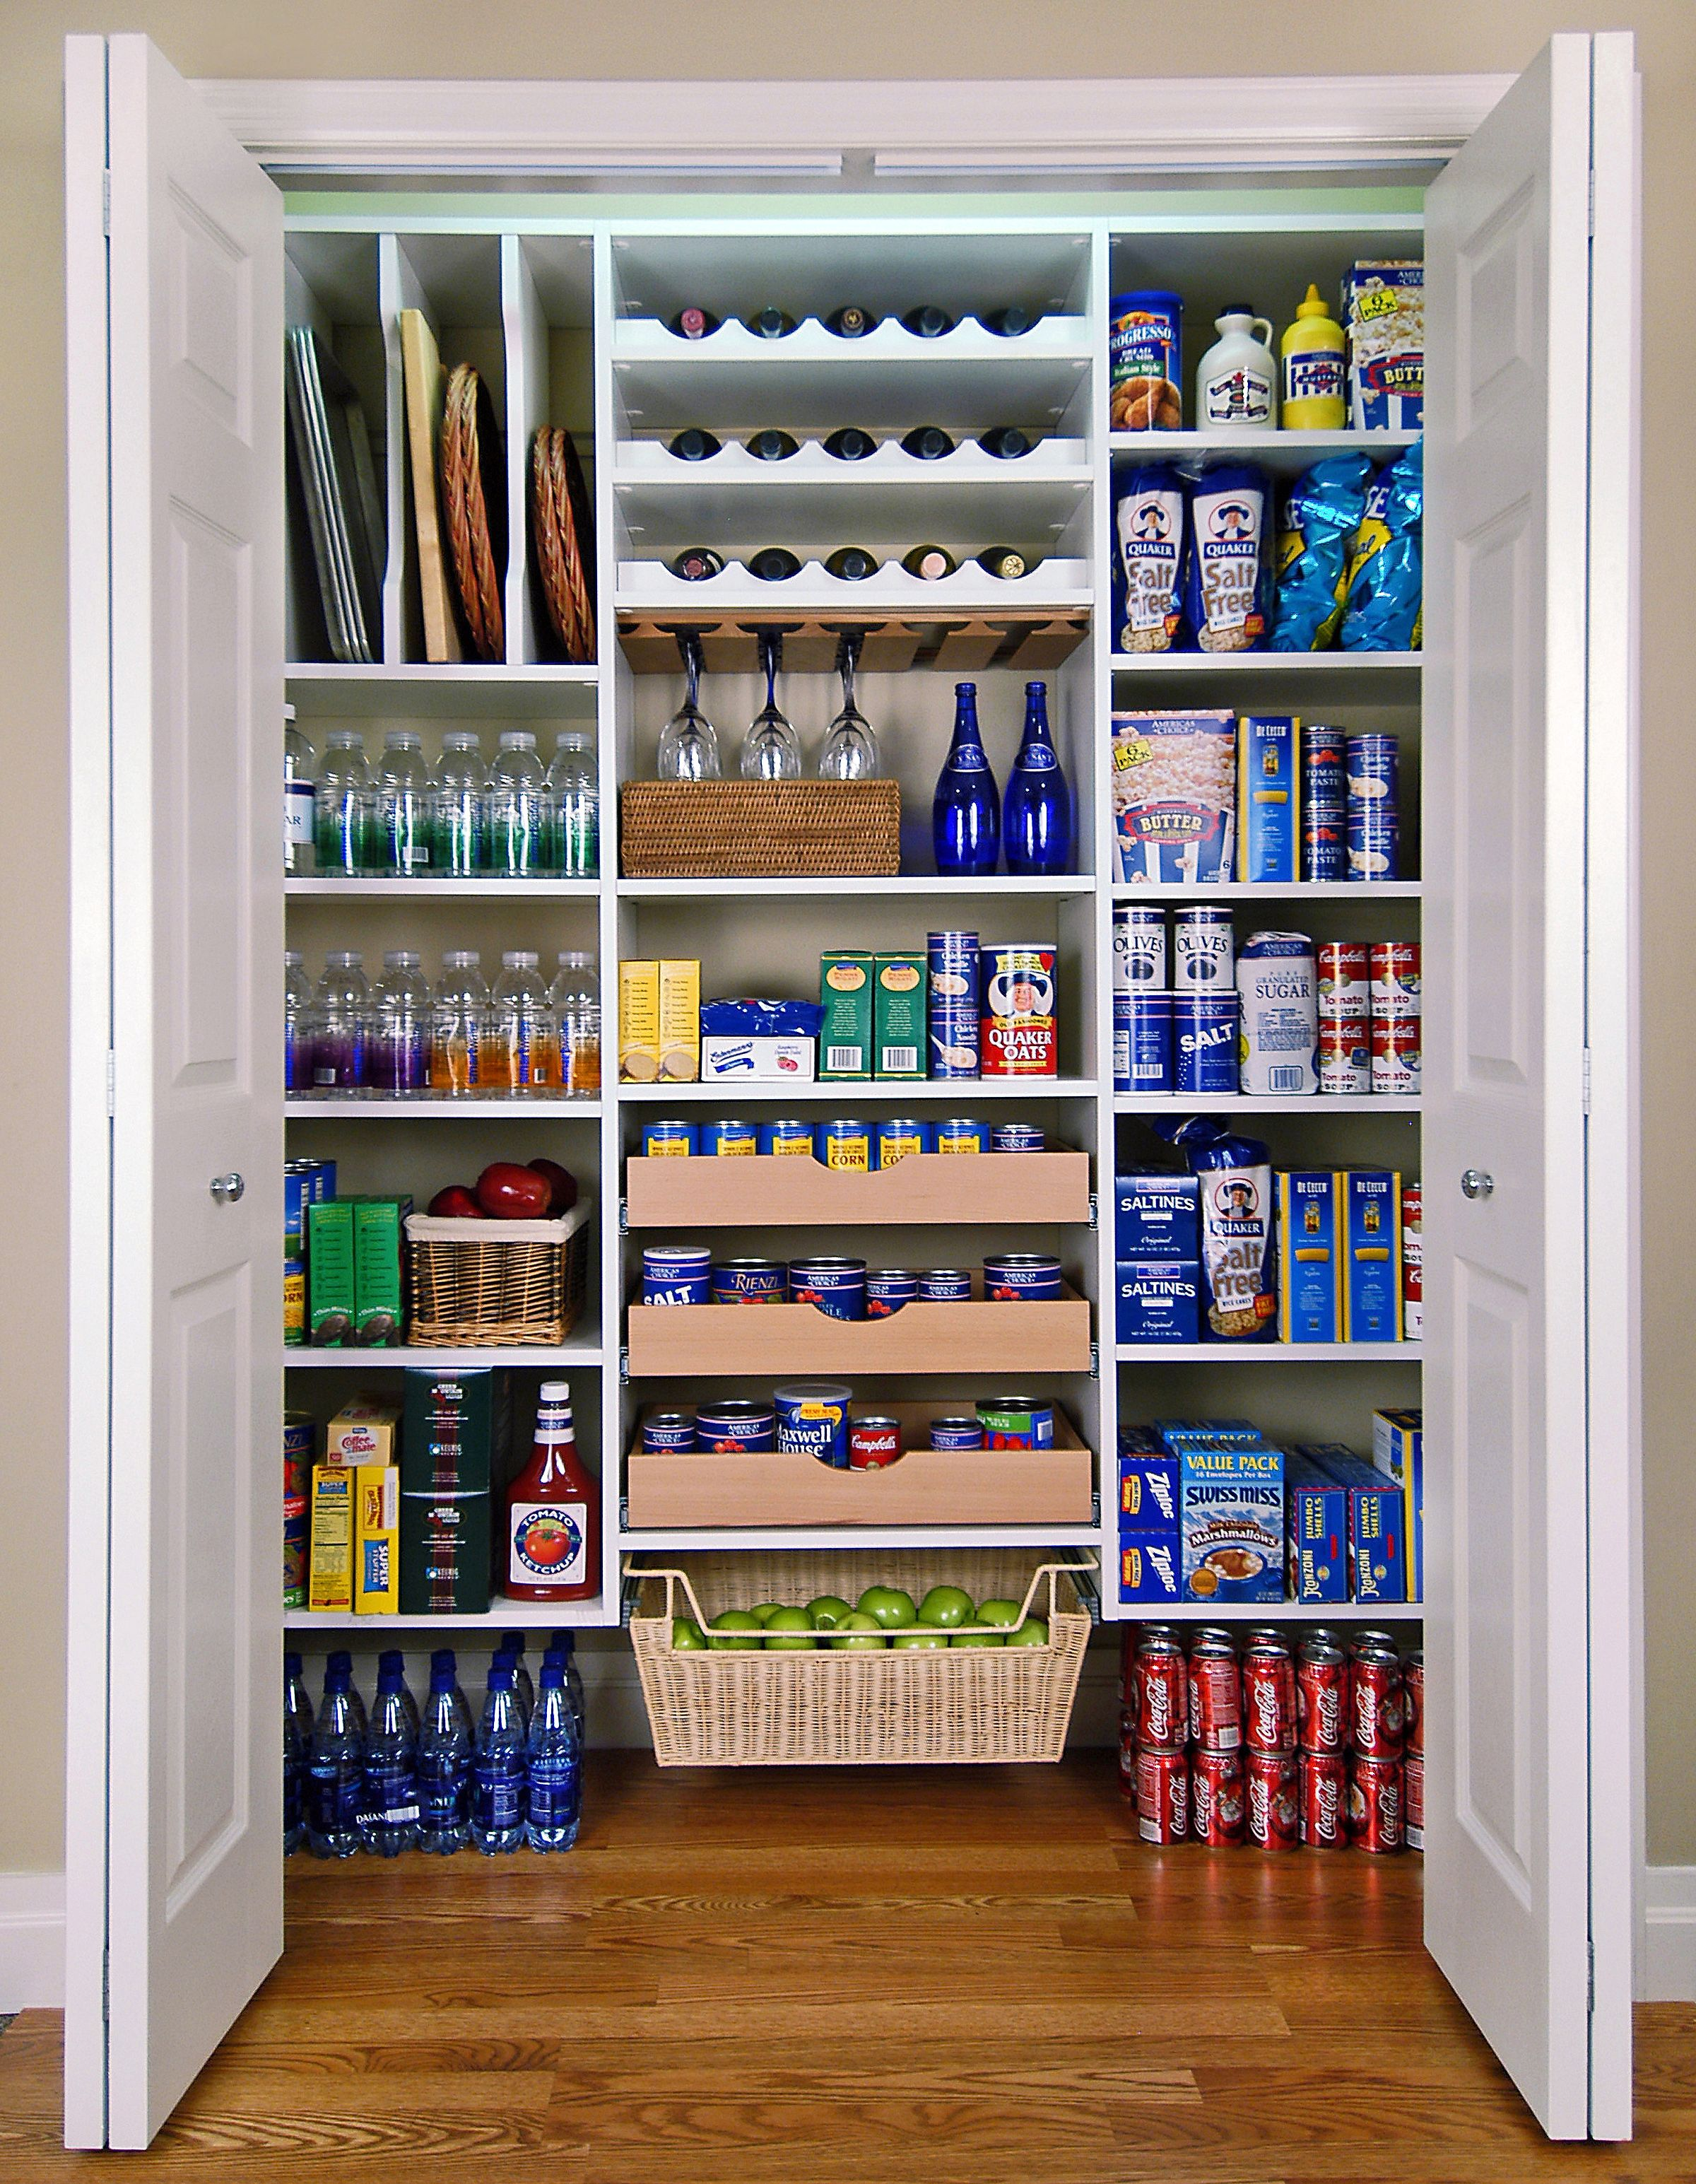 Kitchen Closet Shelving Pantry Makeover With Easy Custom Diy Shelving From Melamine 1x2